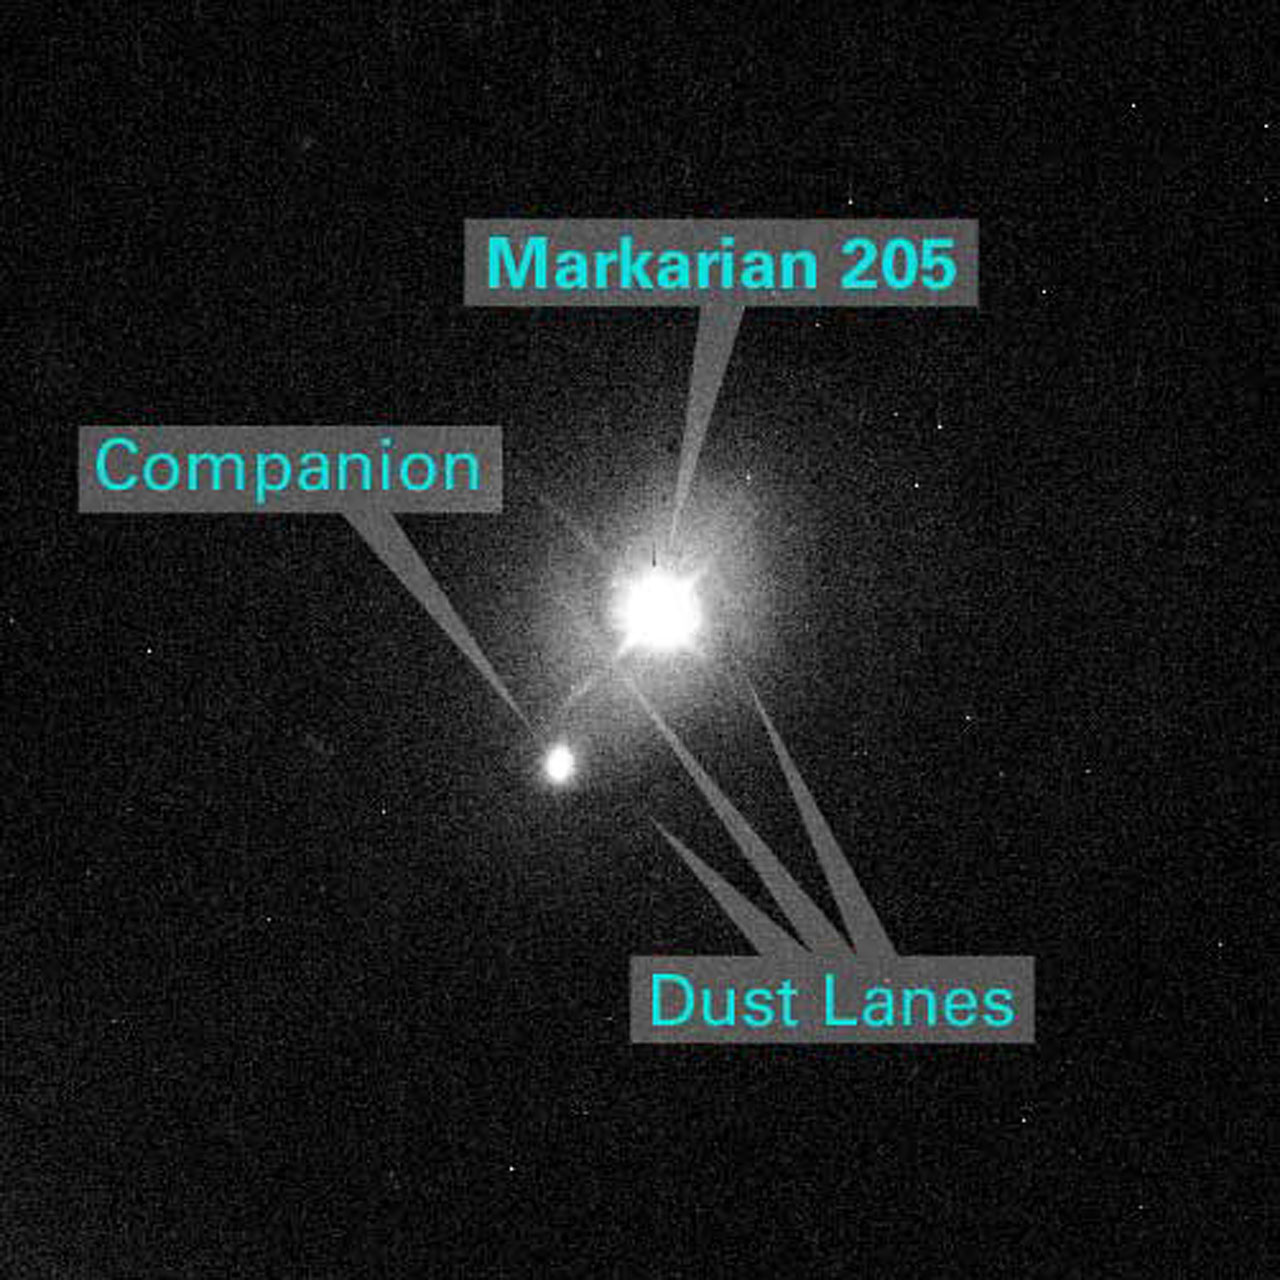 Annotated Image of Markarian 205 and Companion